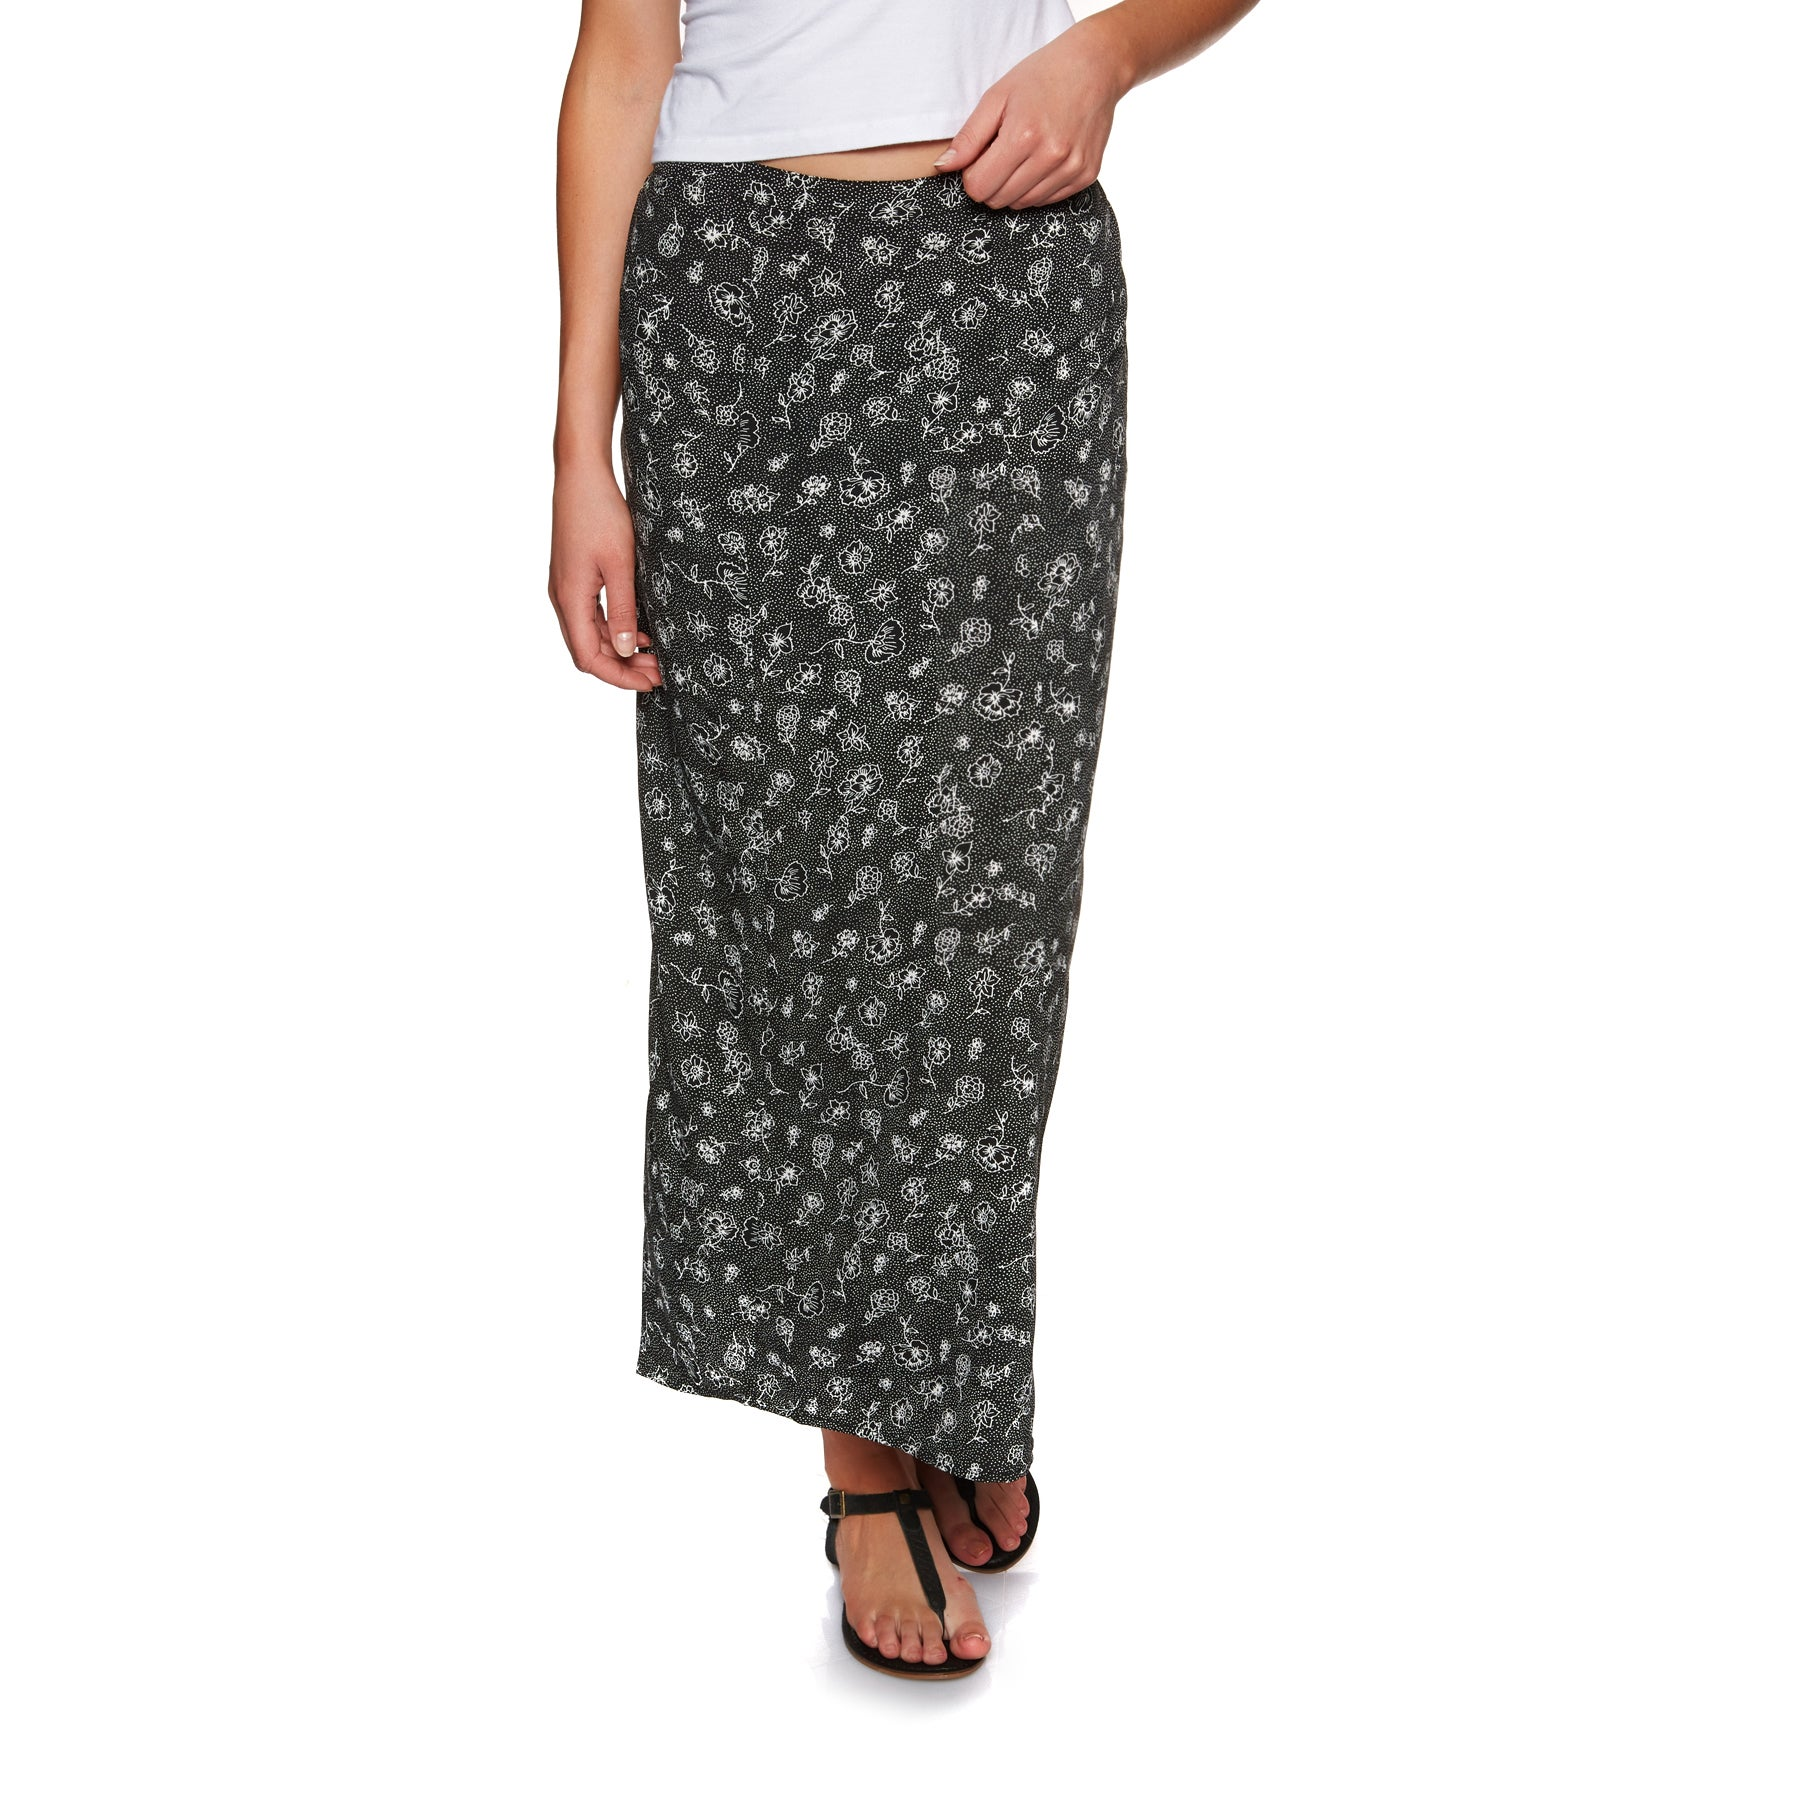 Amuse Society Afternoon Flirt Ladies Skirt